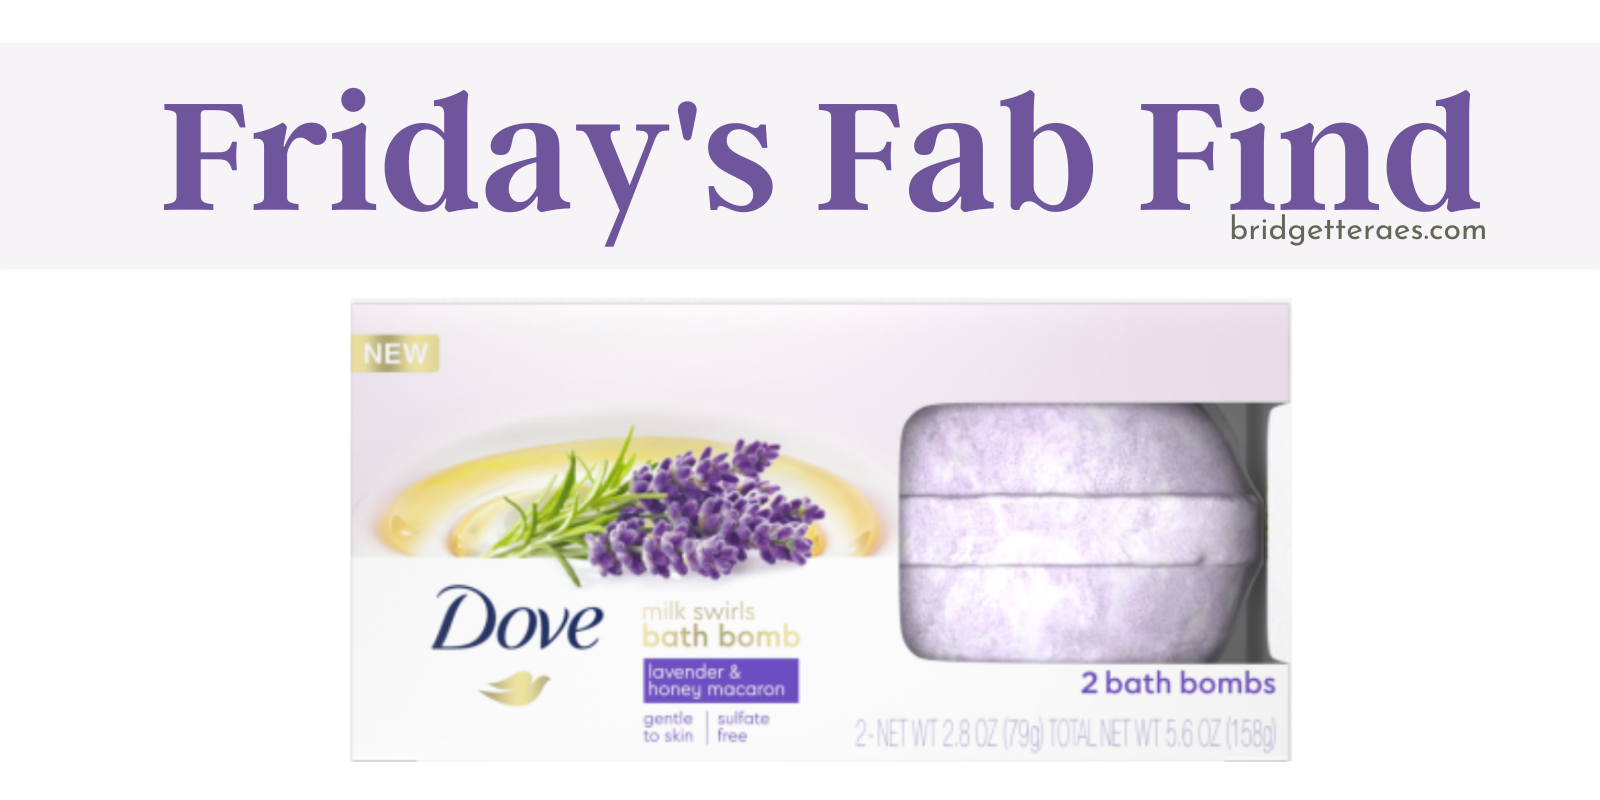 Friday's Fab Find: Dove Bath Bombs